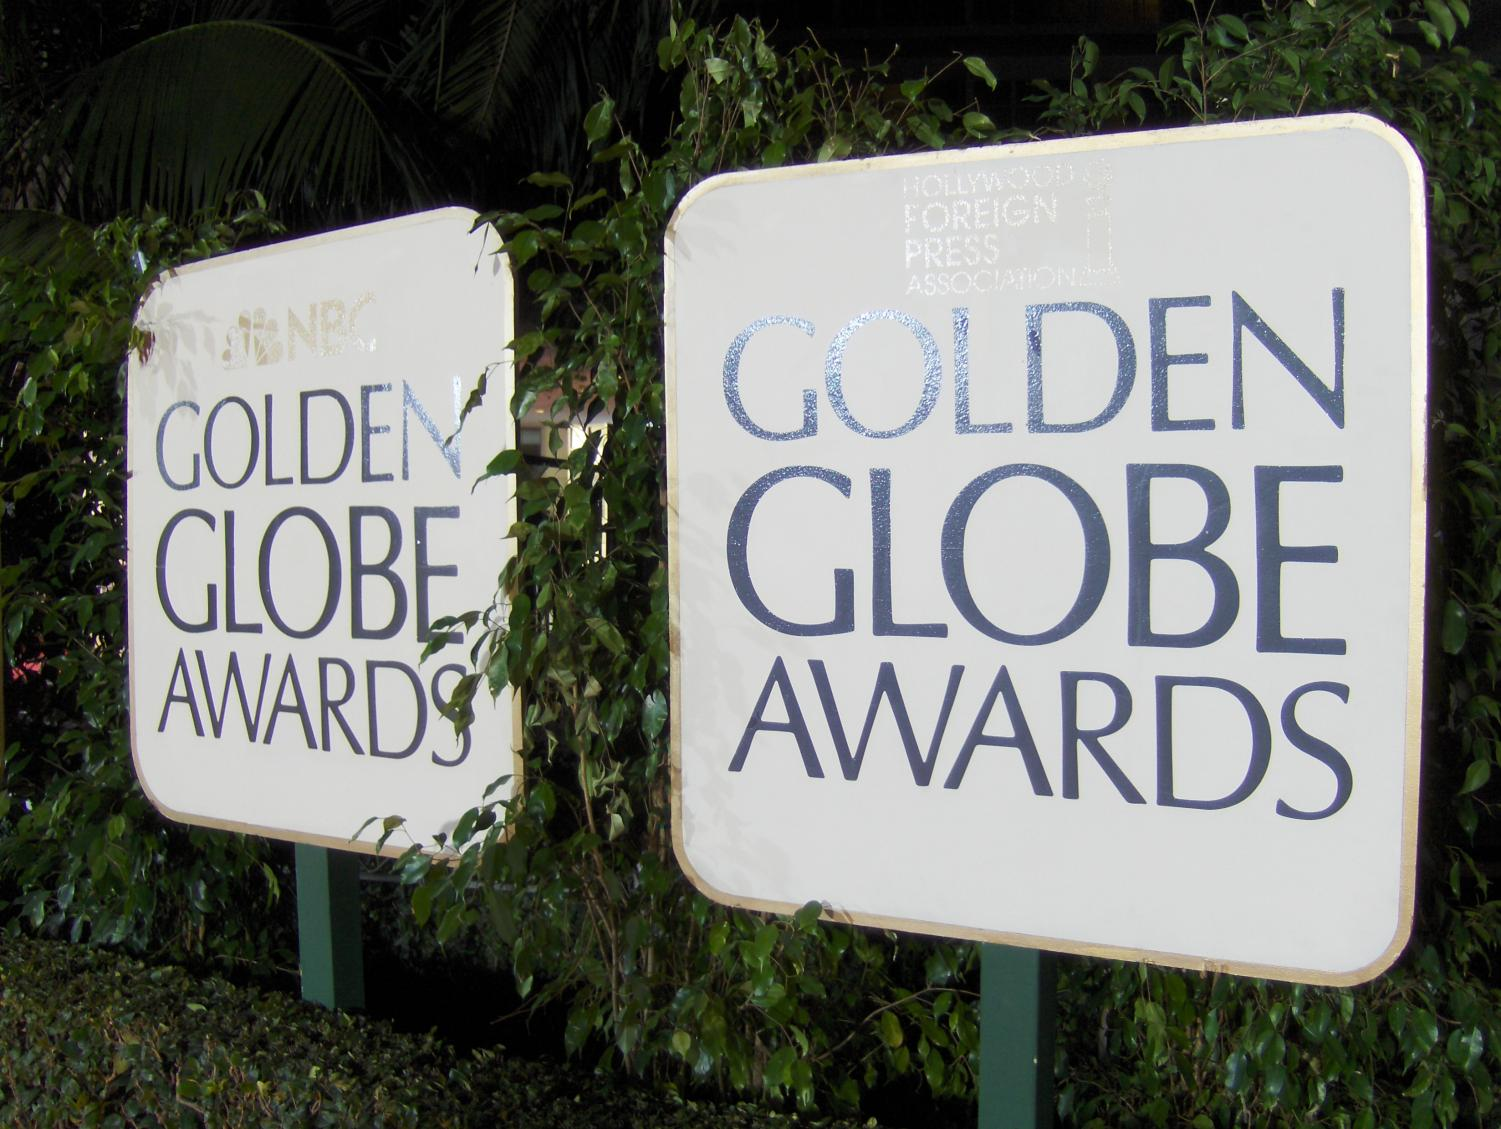 The Golden Globes awarded many actors and actresses for their outstanding performances.